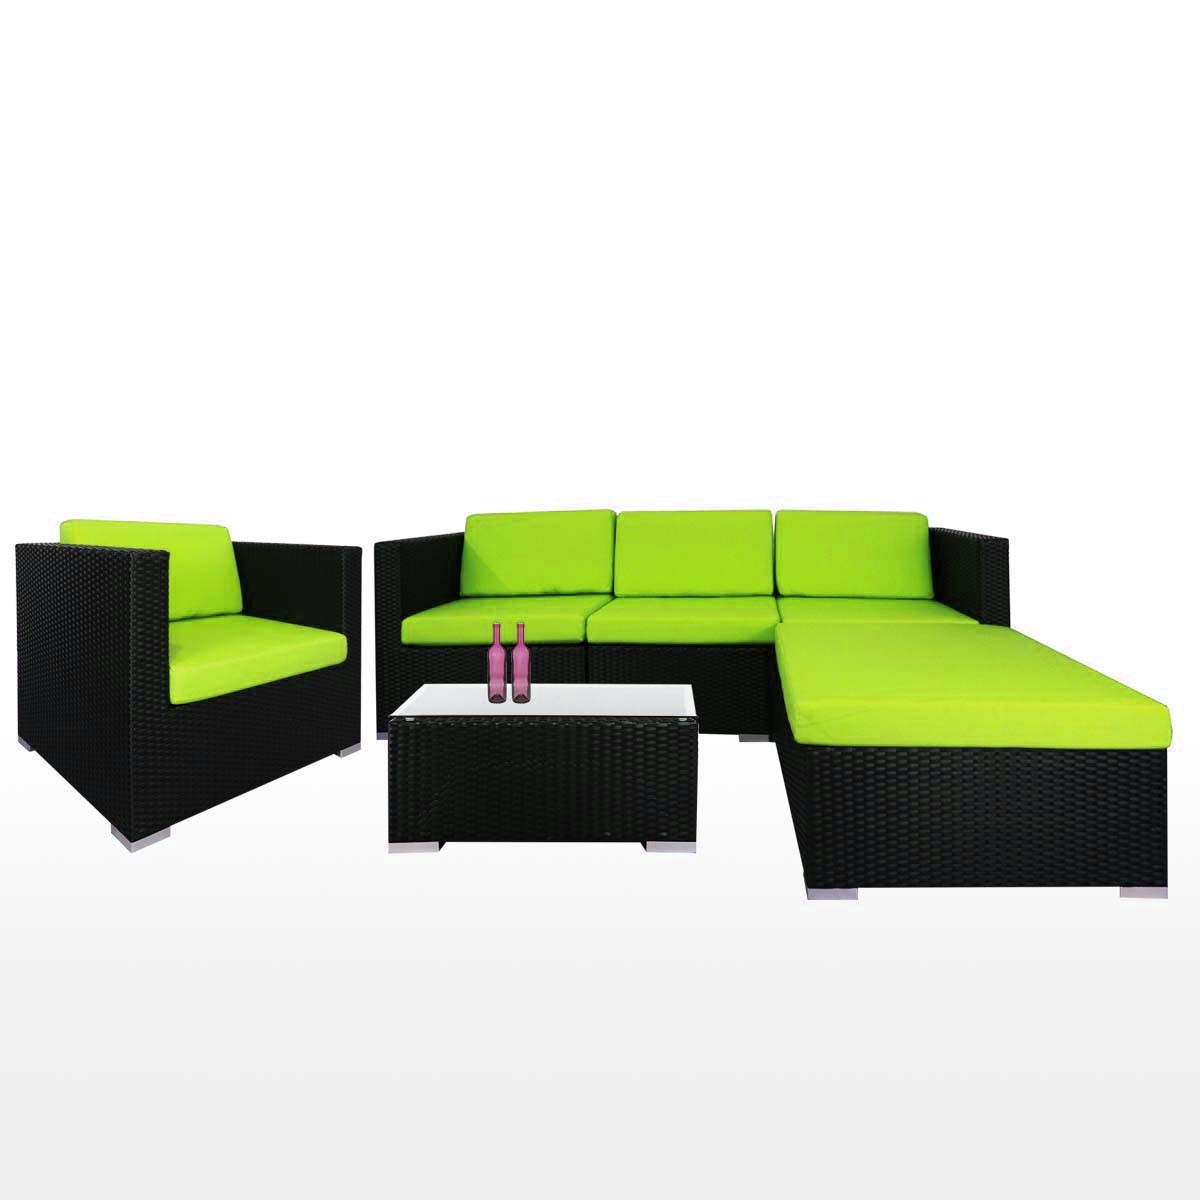 Summer Outdoor Modular Sofa Set Ii Green Cushions 2 Year